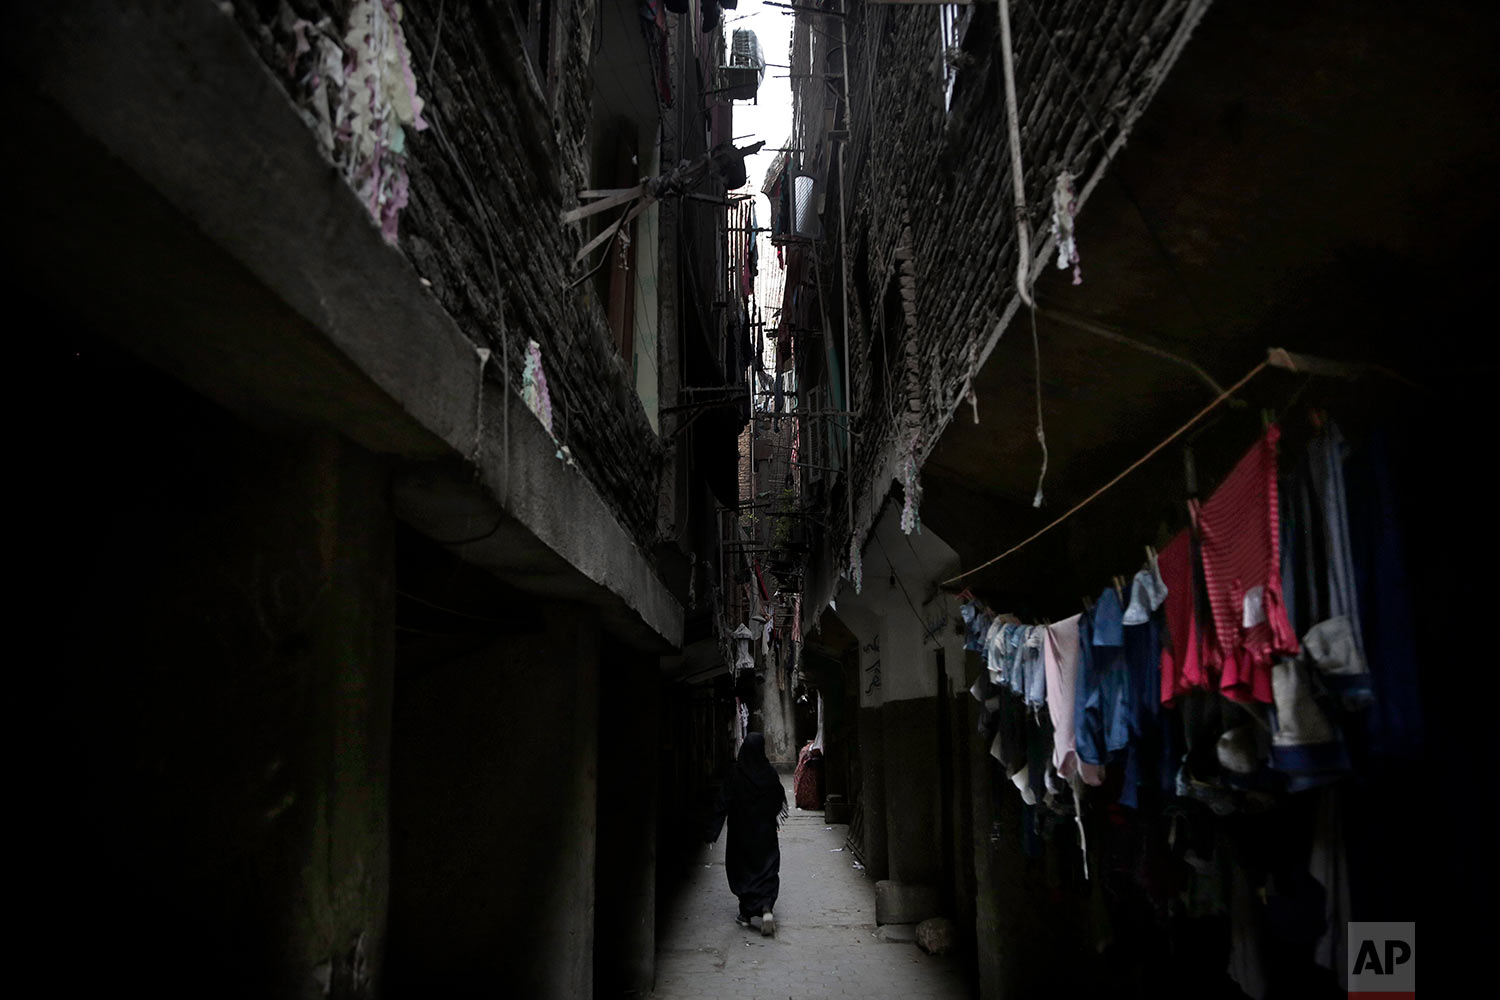 In this Oct. 29, 2018 photo, a woman walks in between buildings in the Imbaba neighborhood of Giza, Egypt. (AP Photo/Nariman El-Mofty)